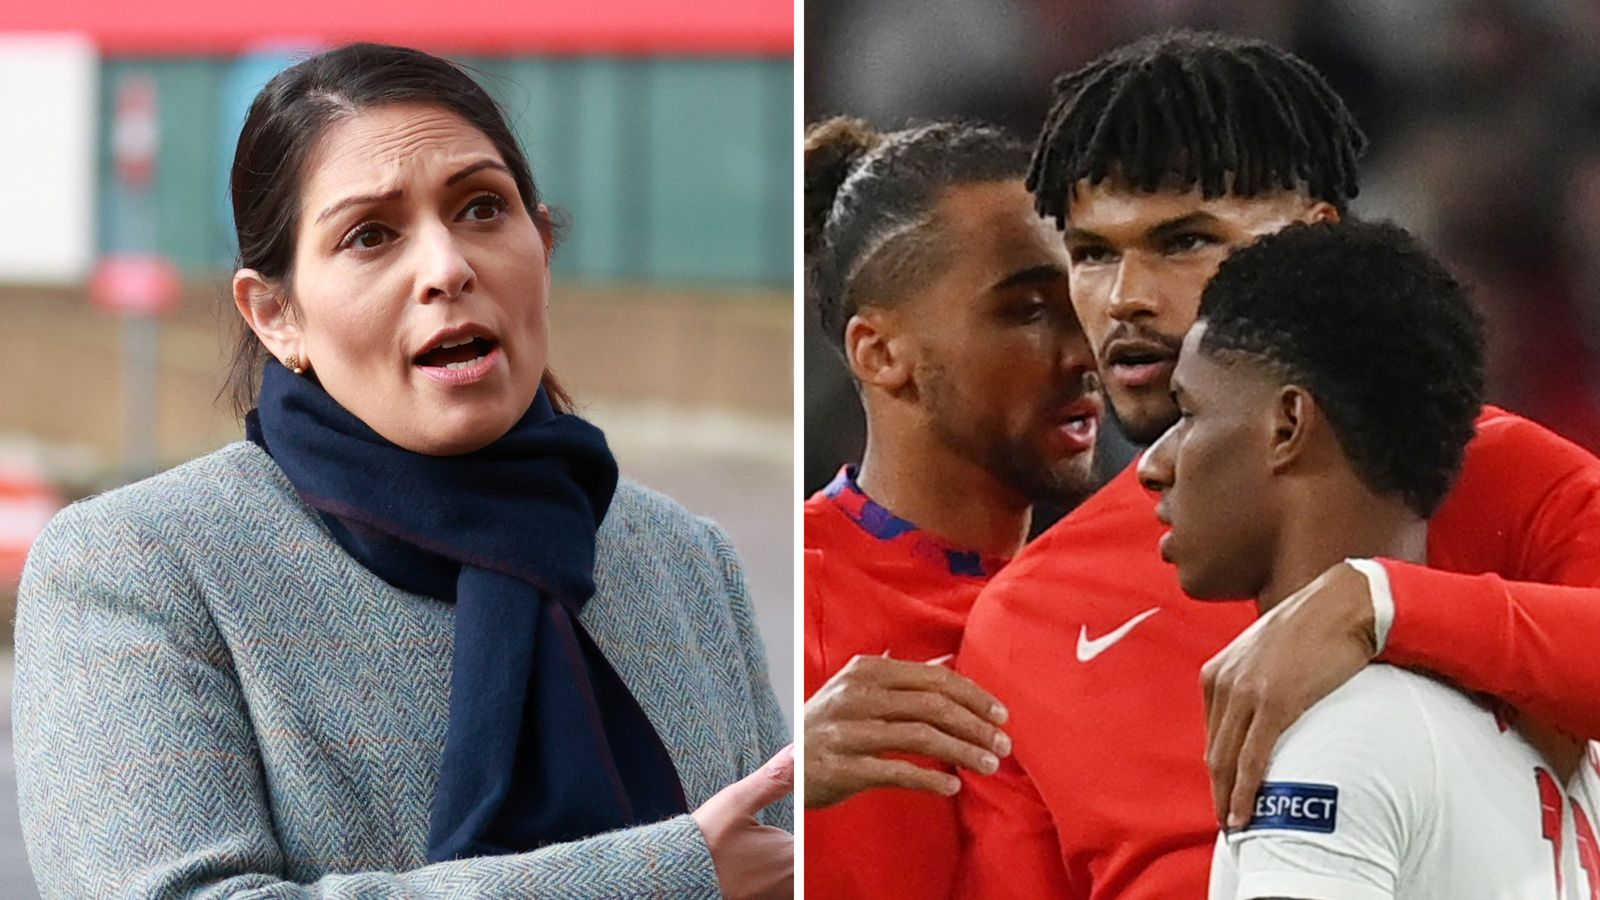 England defender Tyrone Mings hits out at Home Secretary Priti Patel after players subject to racist abuse